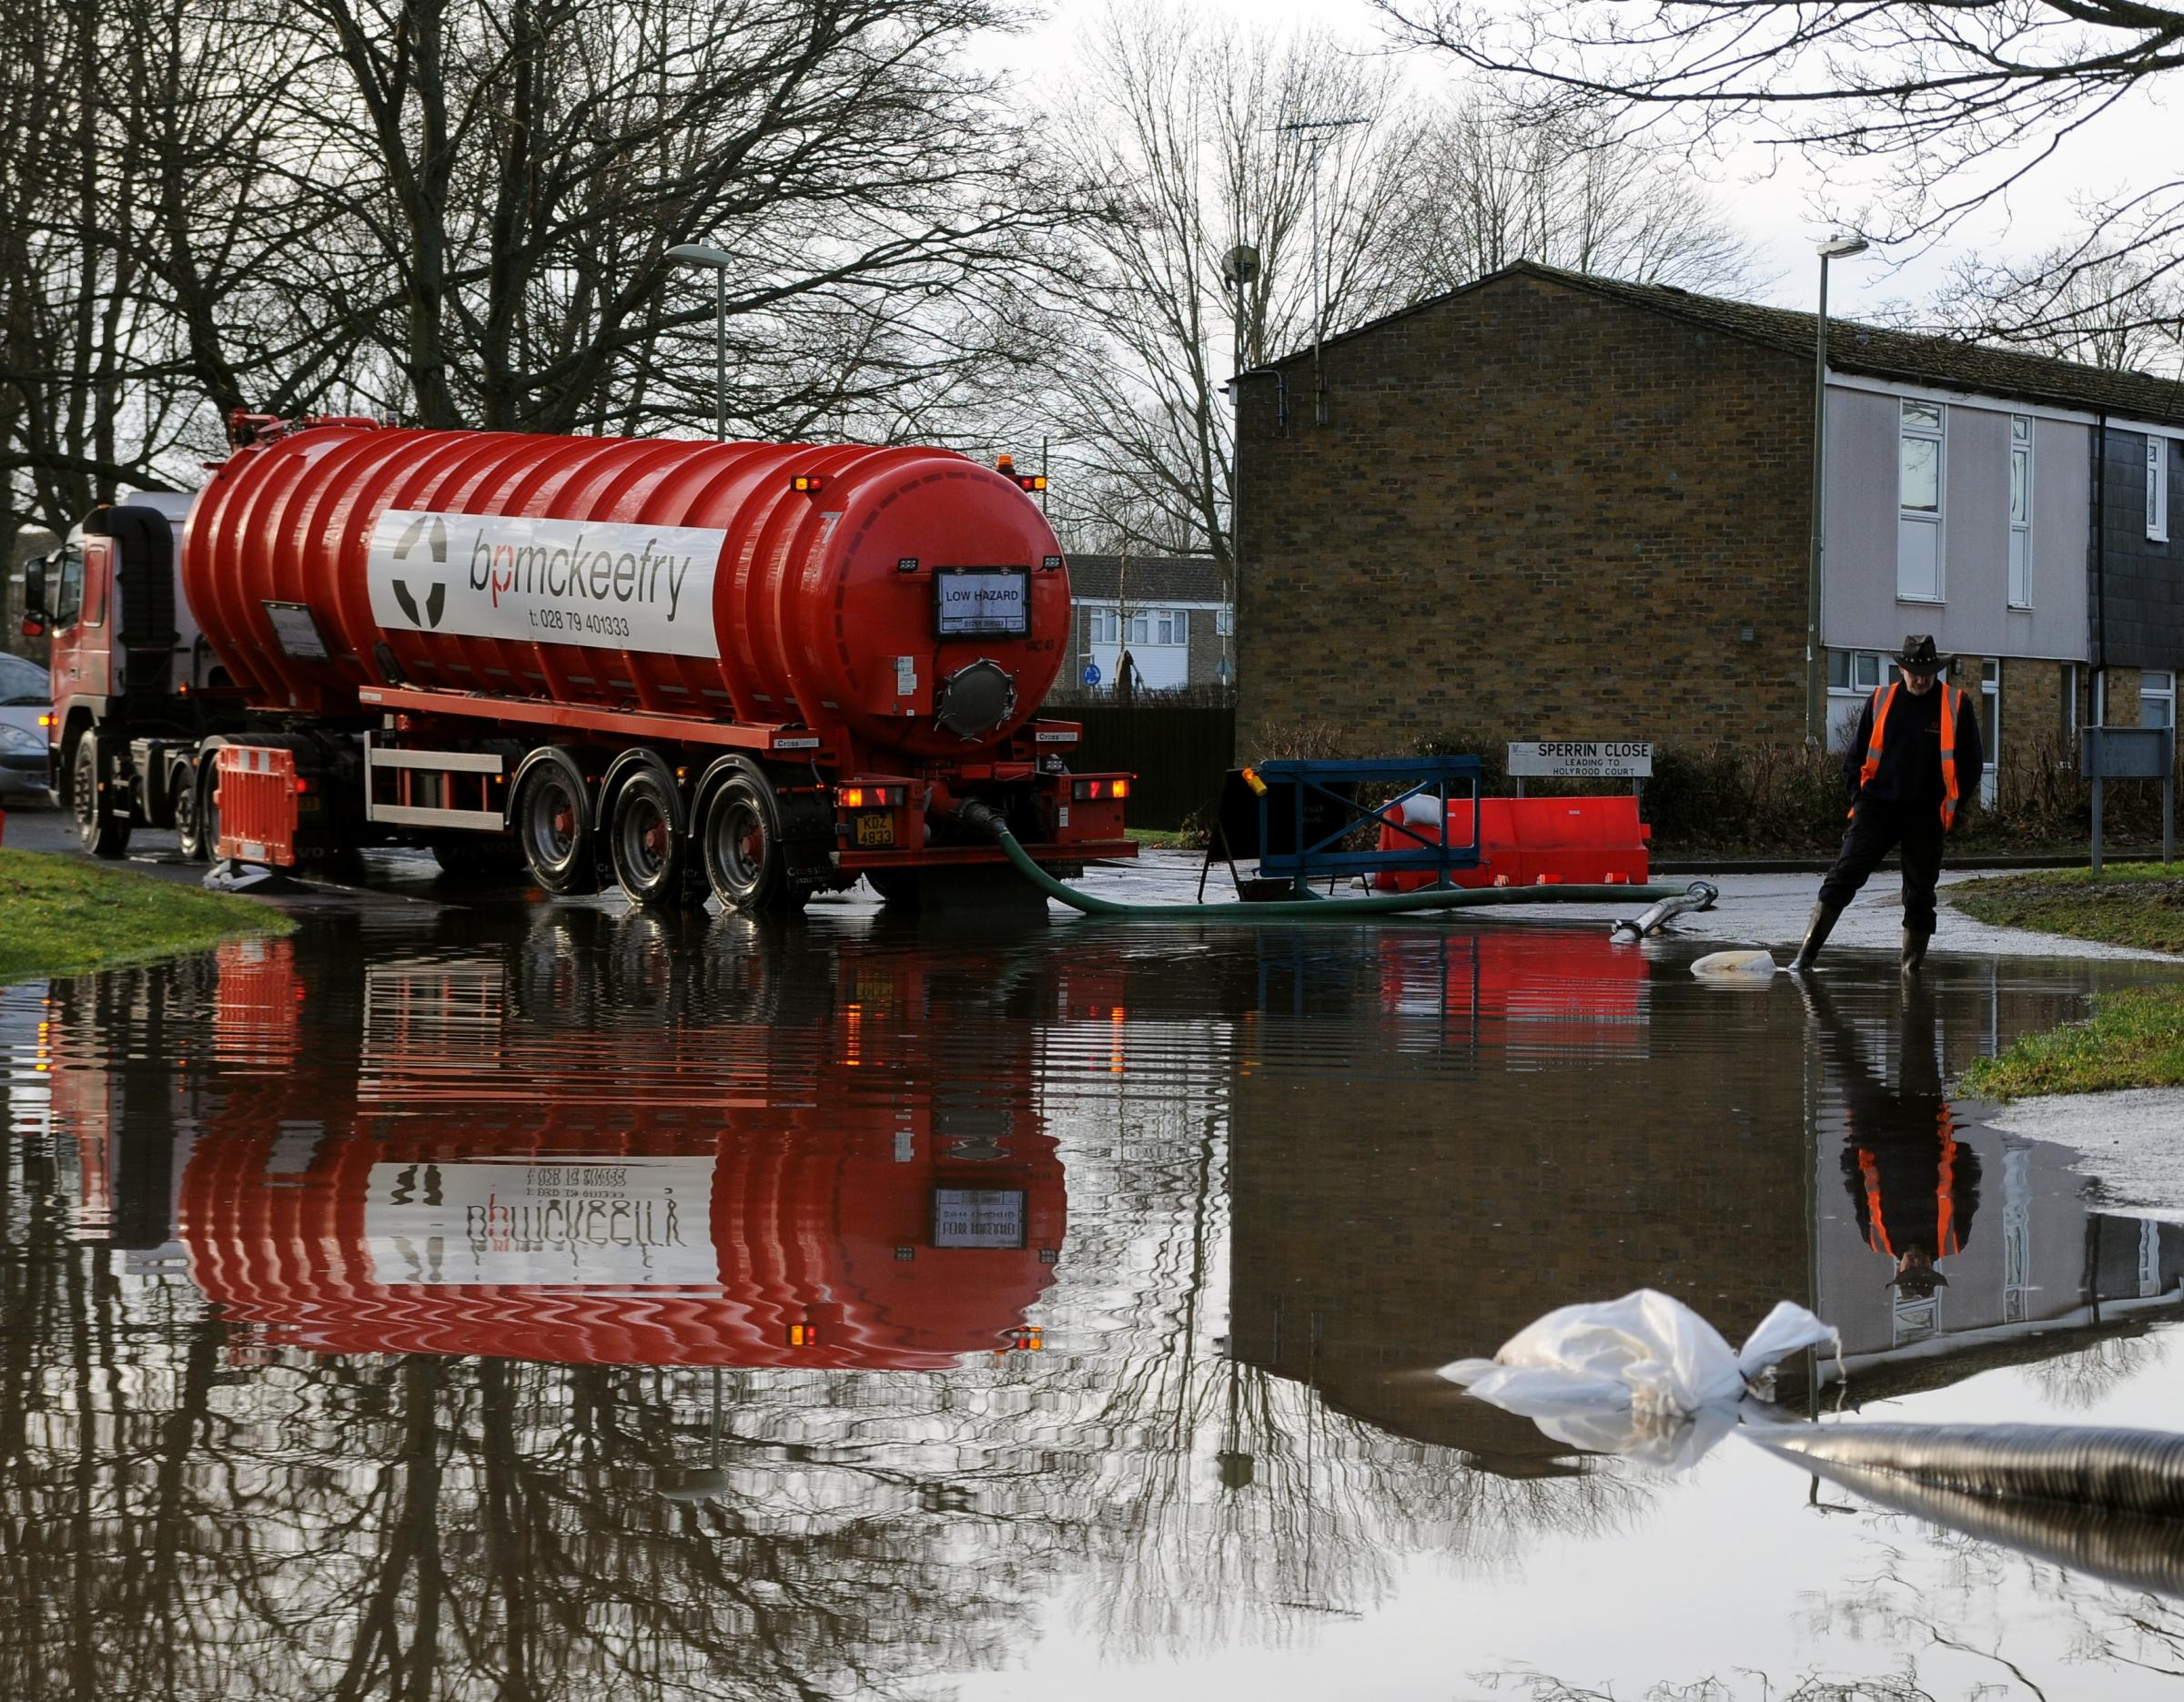 One of the tankers which have been used round the clock to pump away floodwater in Buckskin